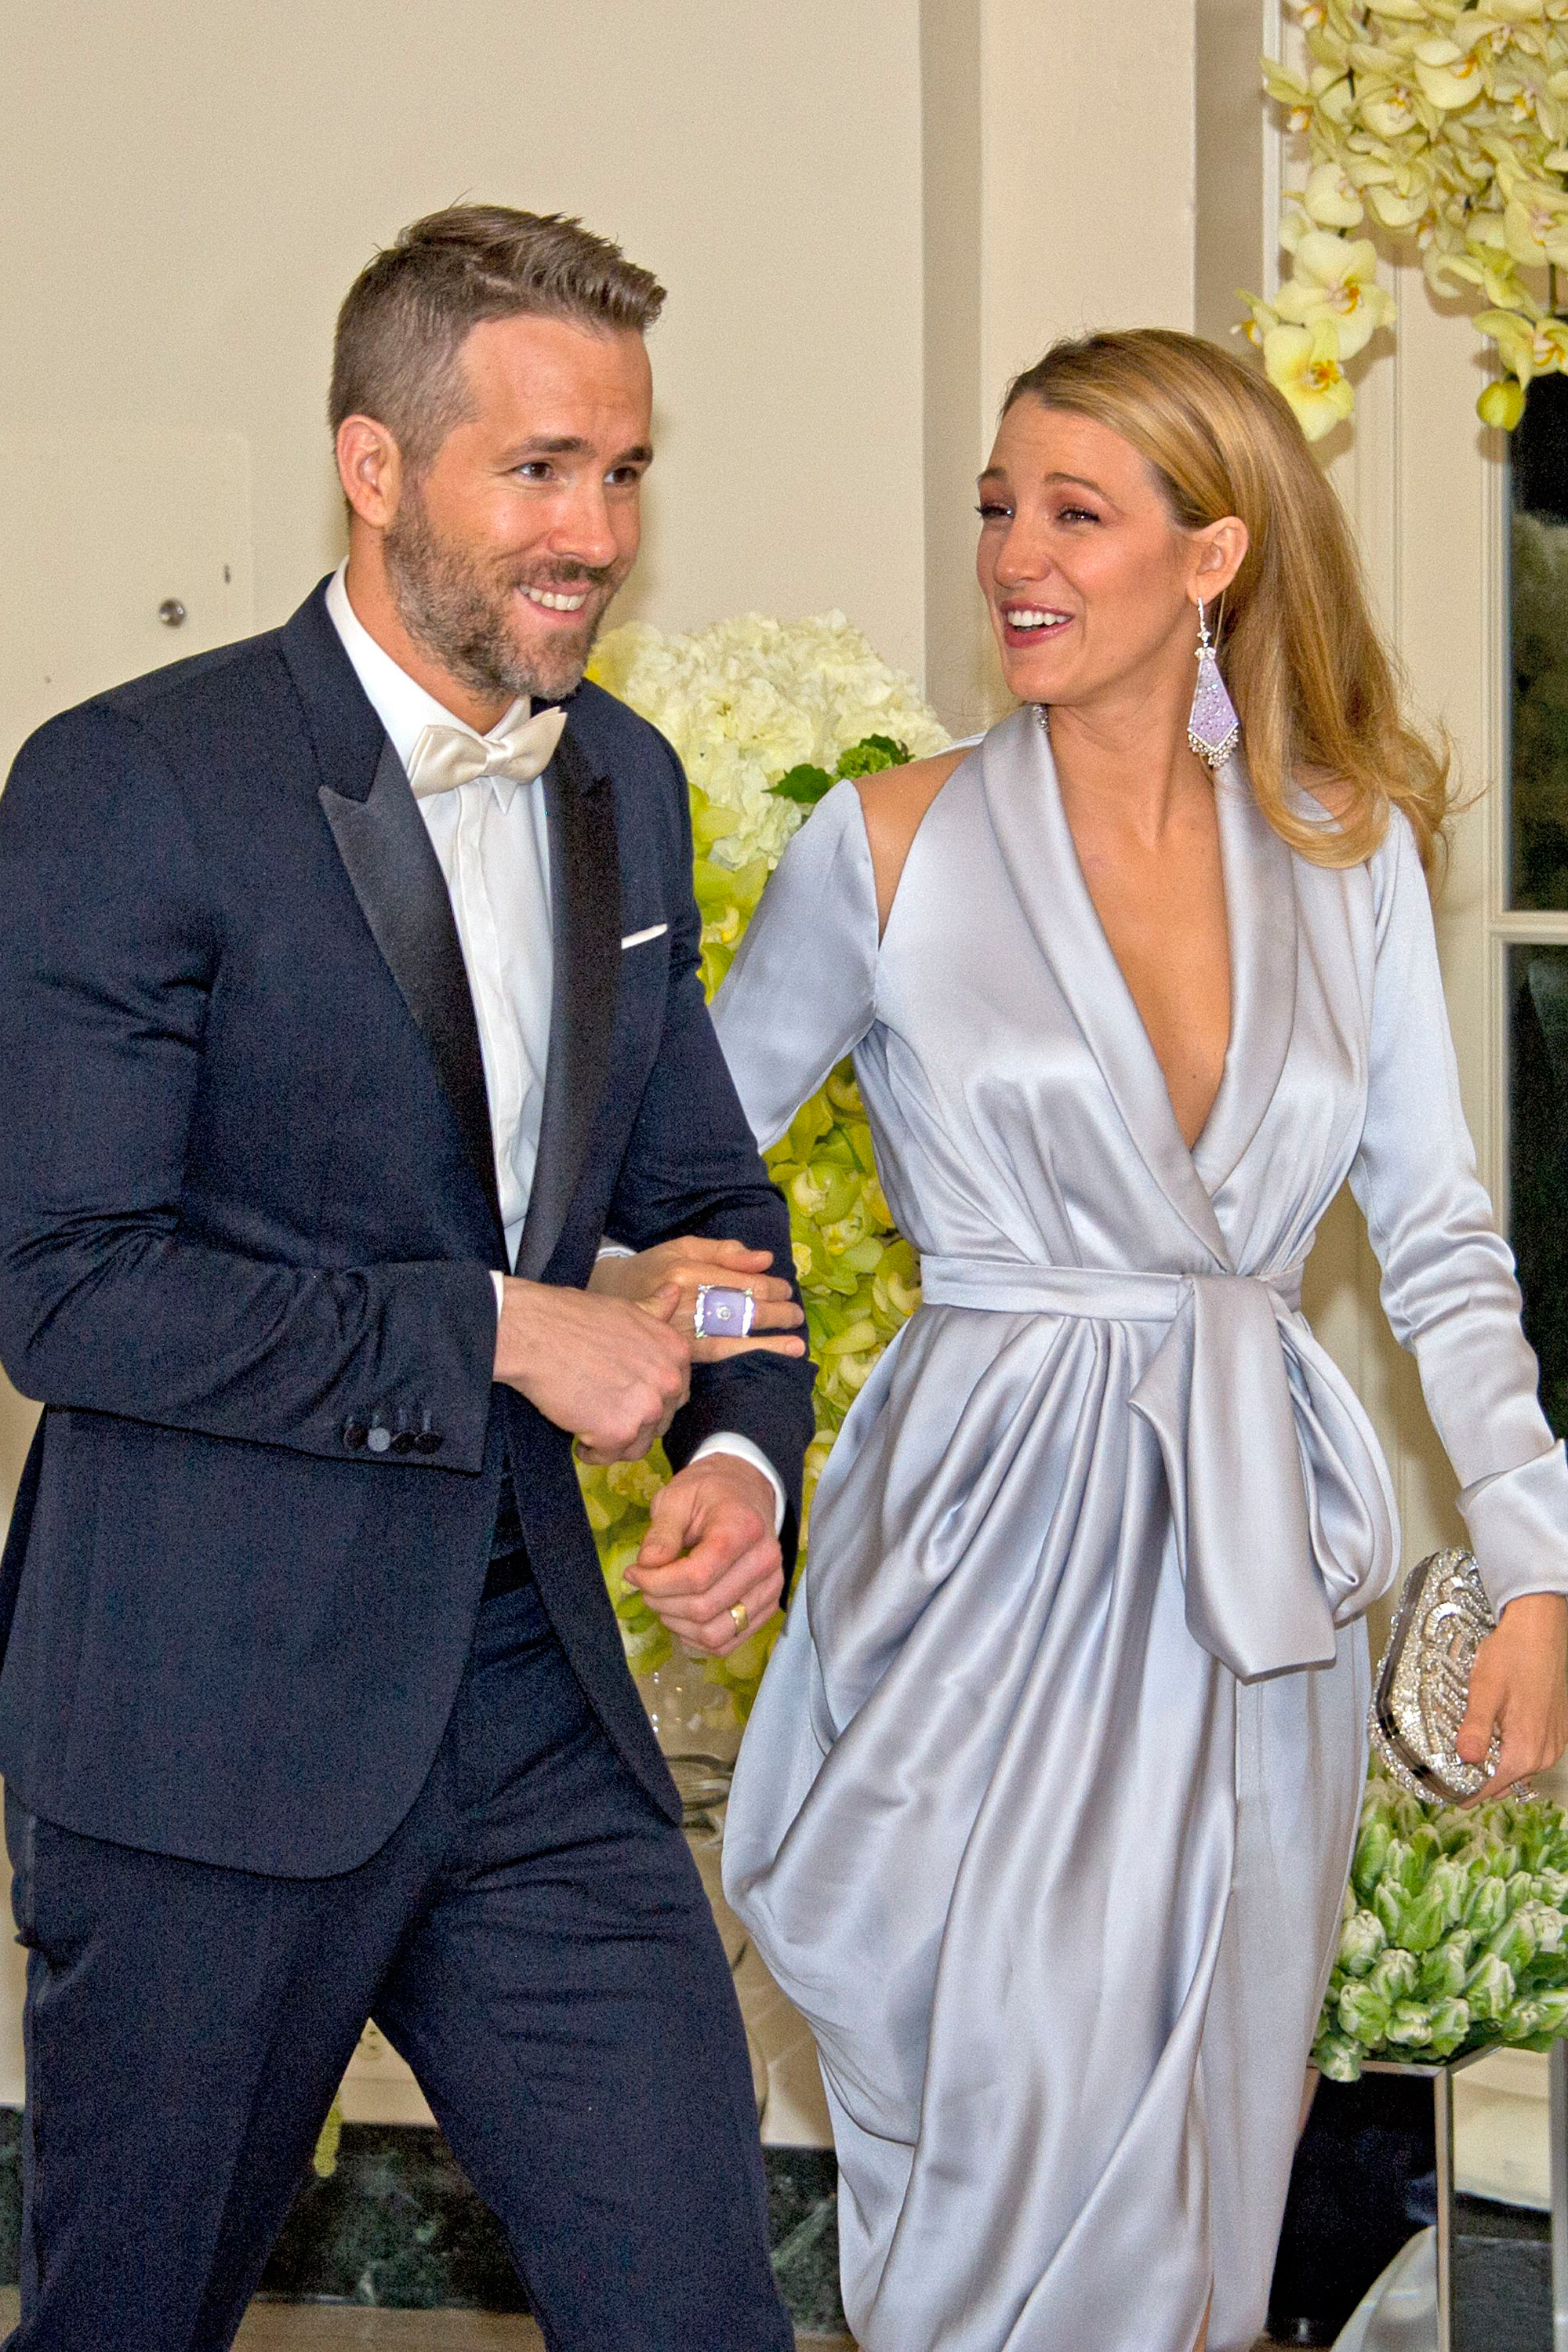 Blake Lively Wedding Dress.Ryan Reynolds Blake Lively Wedding Dress Gown And Dress Gallery